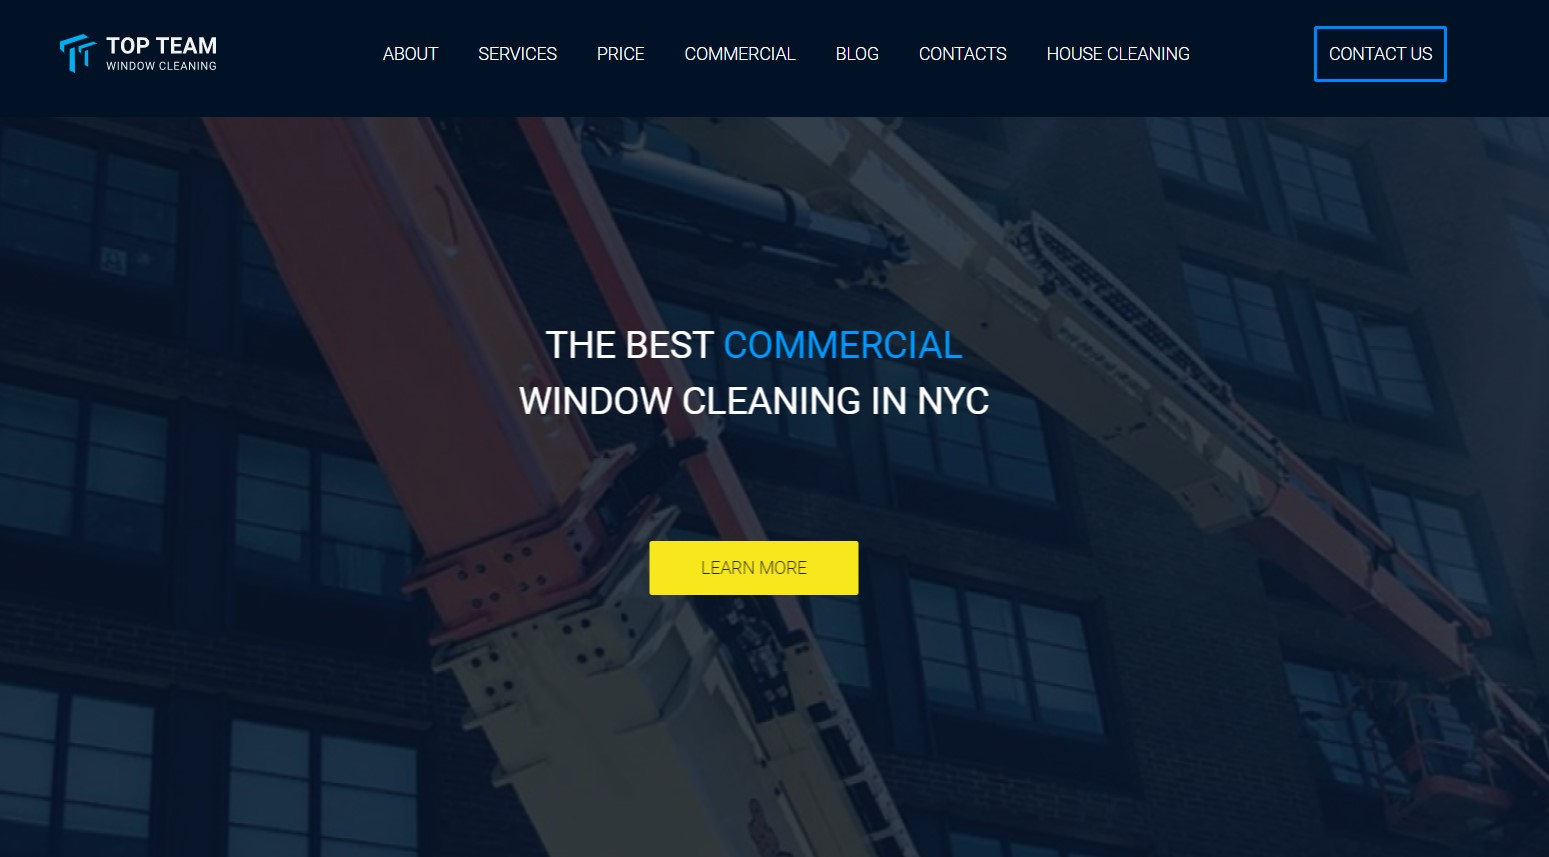 top team window cleaner in new york